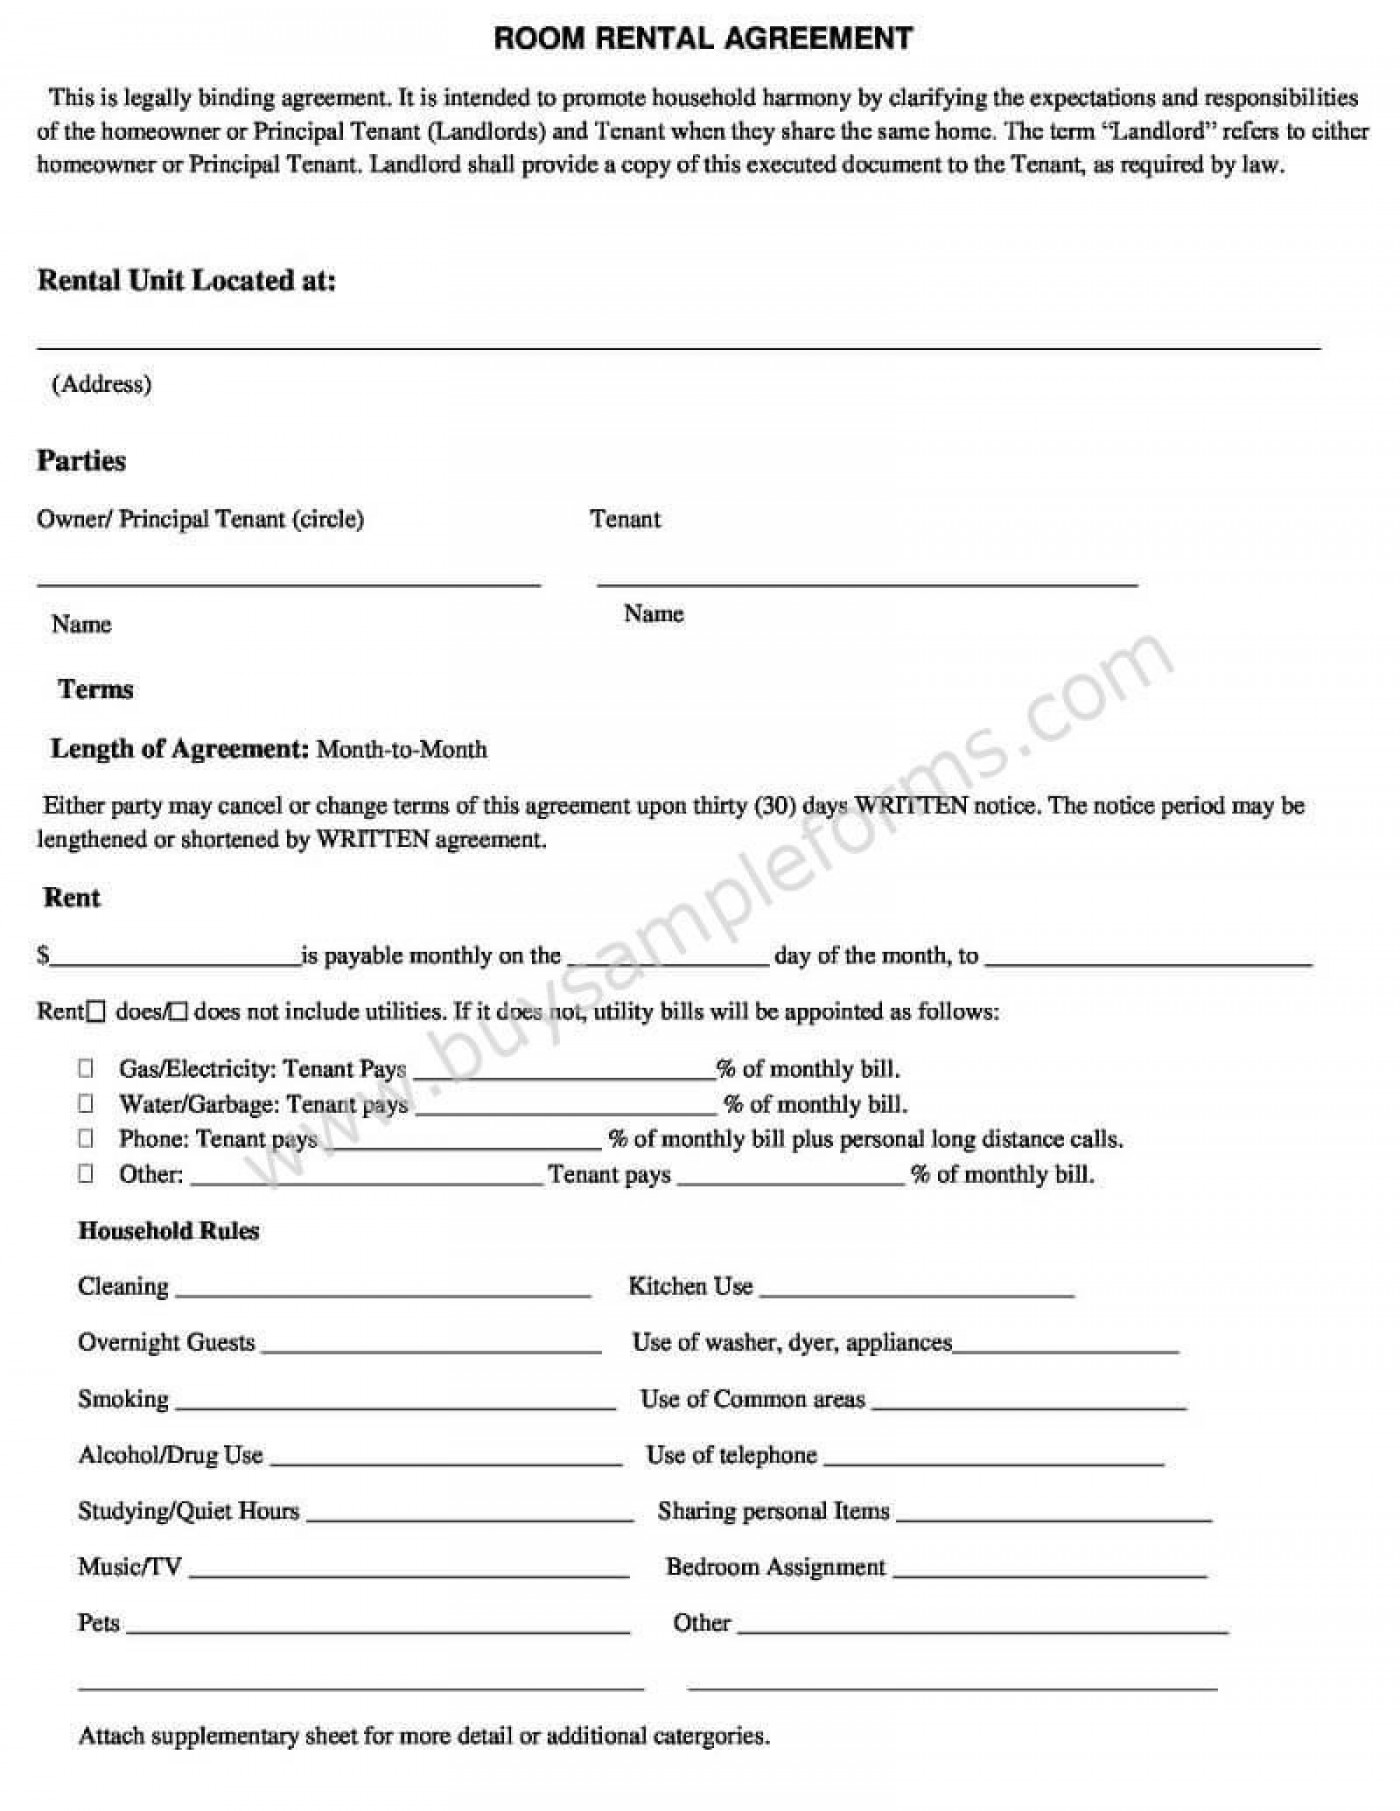 009 Dreaded Rental Agreement Template Word Free Photo  Room Doc In Tamil Format Download1400